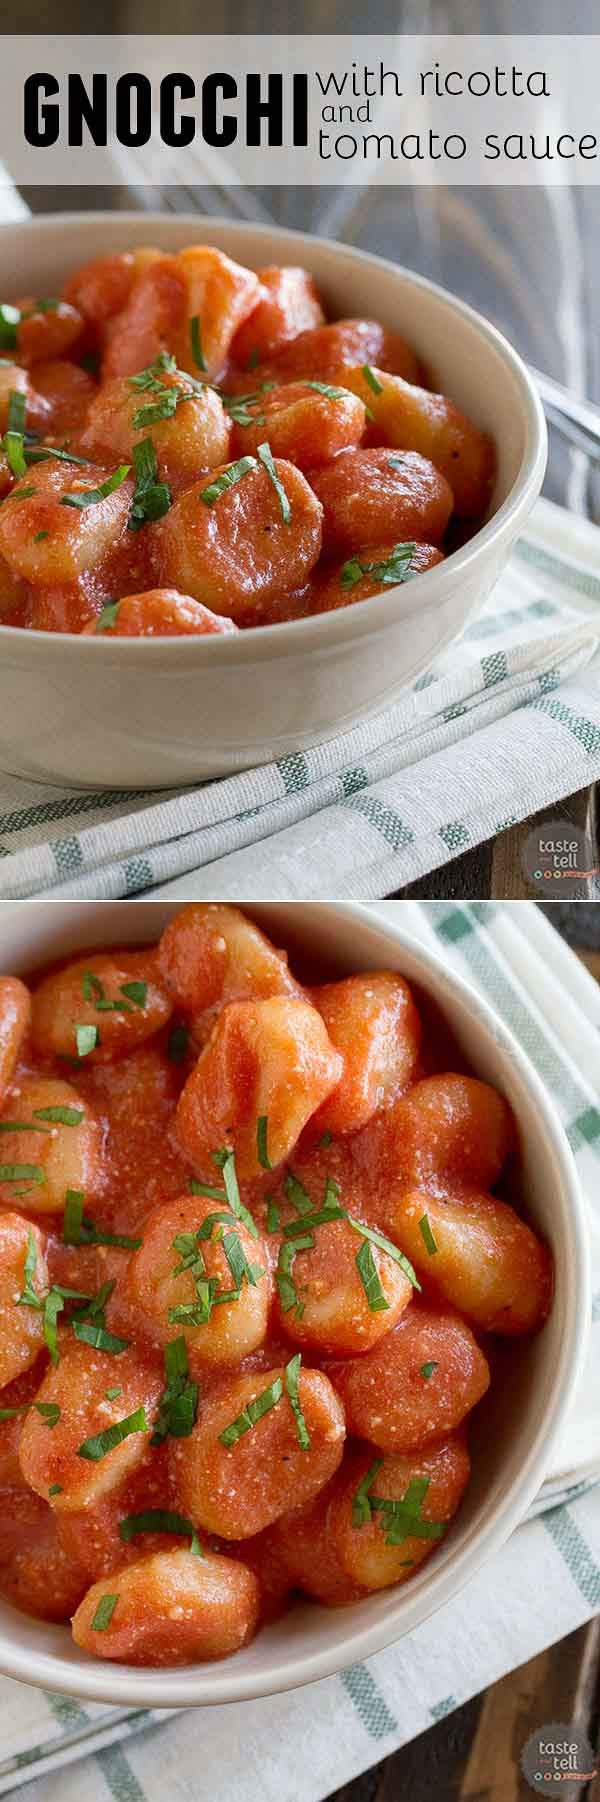 It doesn't get much easier than this Ricotta Gnocchi with Tomato Sauce. Gnocchi is cooked and combined with a simple tomato sauce and ricotta.